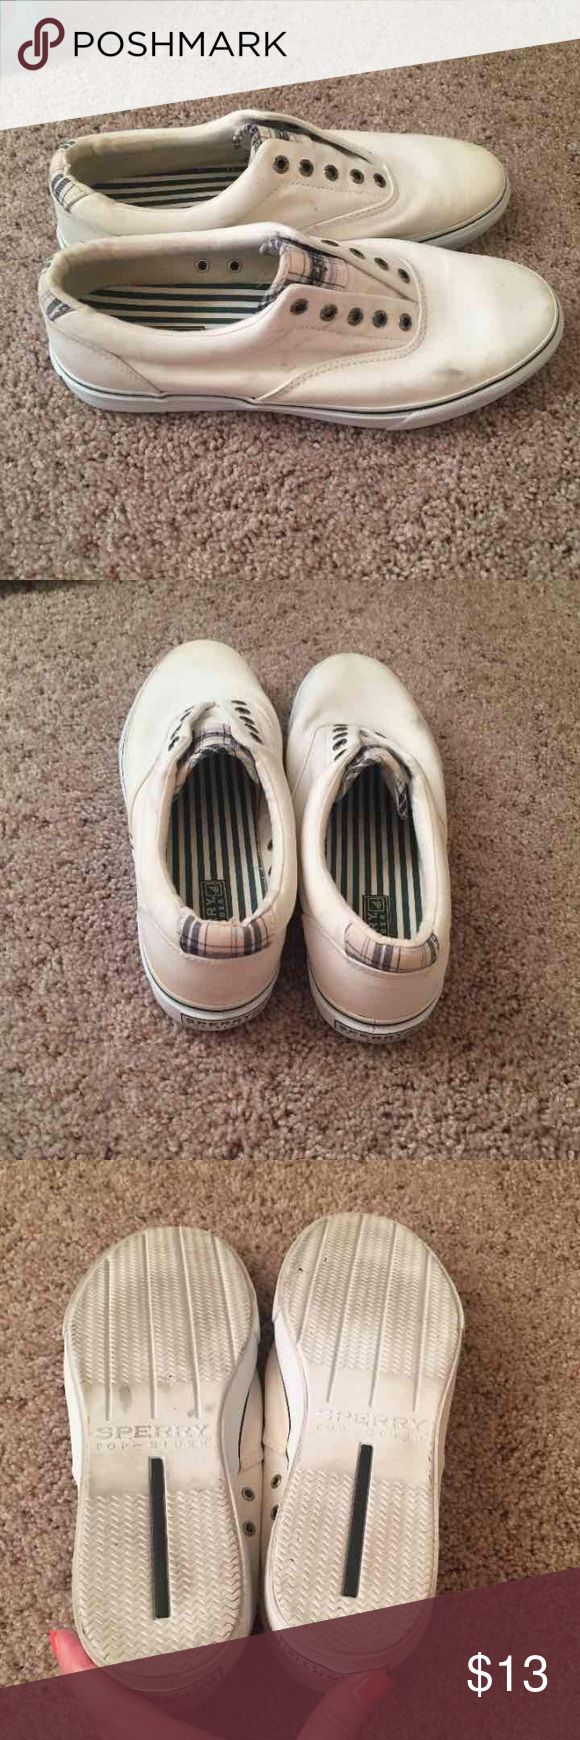 Men's sperry top sider Good condition overall, but you can see some wear. Sperry Top-Sider Shoes Loafers & Slip-Ons